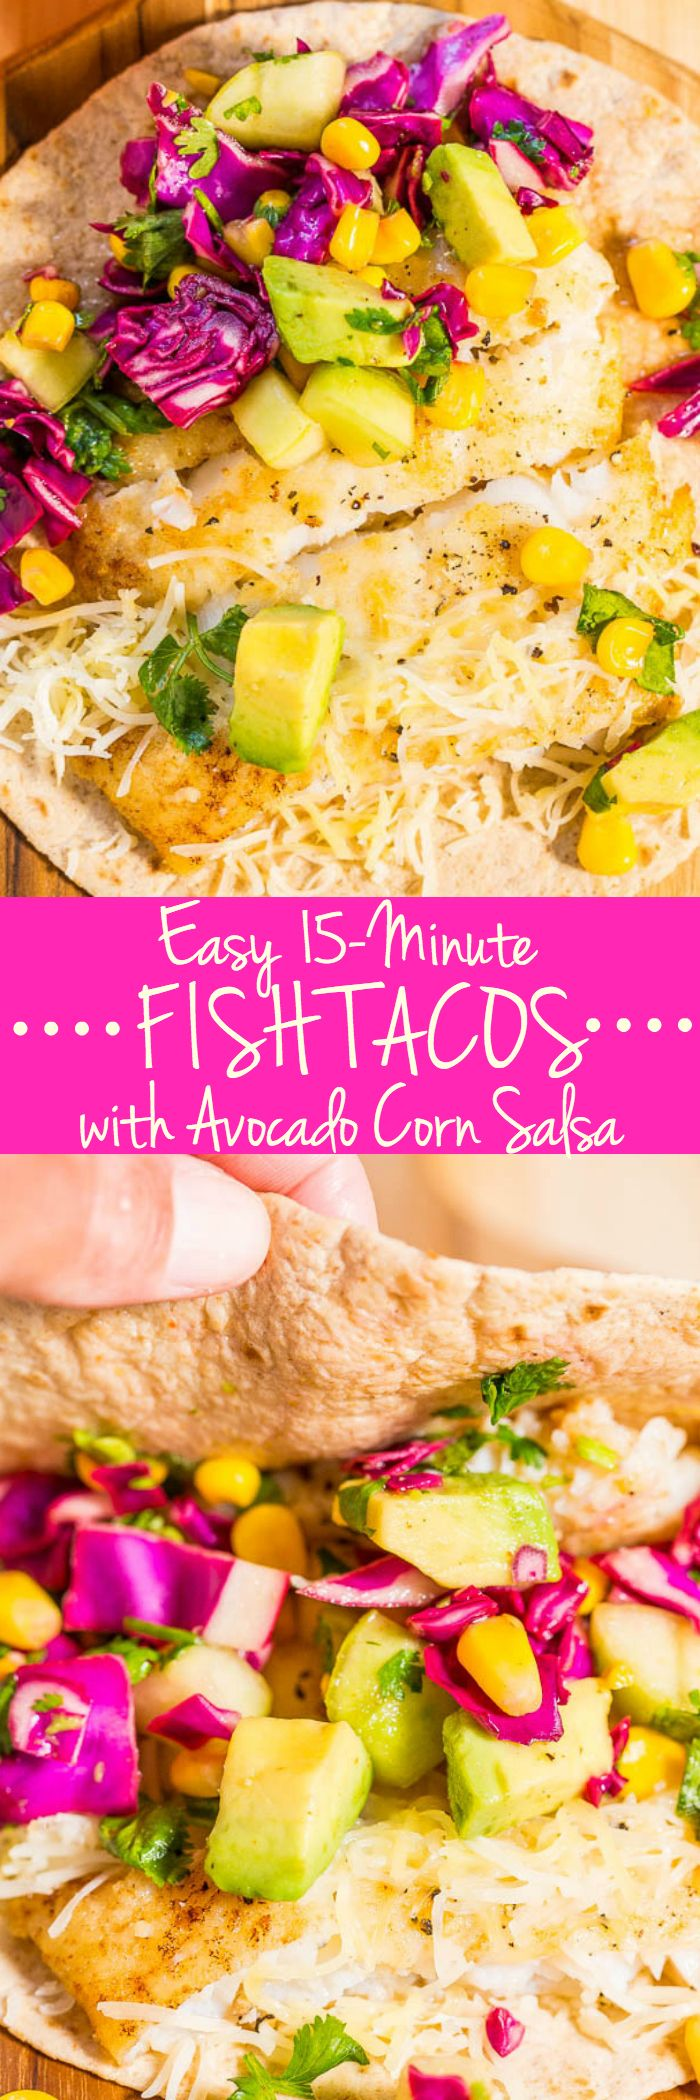 Easy 15-Minute Fish Tacos with Avocado Corn Salsa - Tons of big flavors in a fast, fresh and healthy meal!! A clean-eating recipe that tastes like comfort food (and summer!) #MemorialDay #FathersDay #FourthofJuly